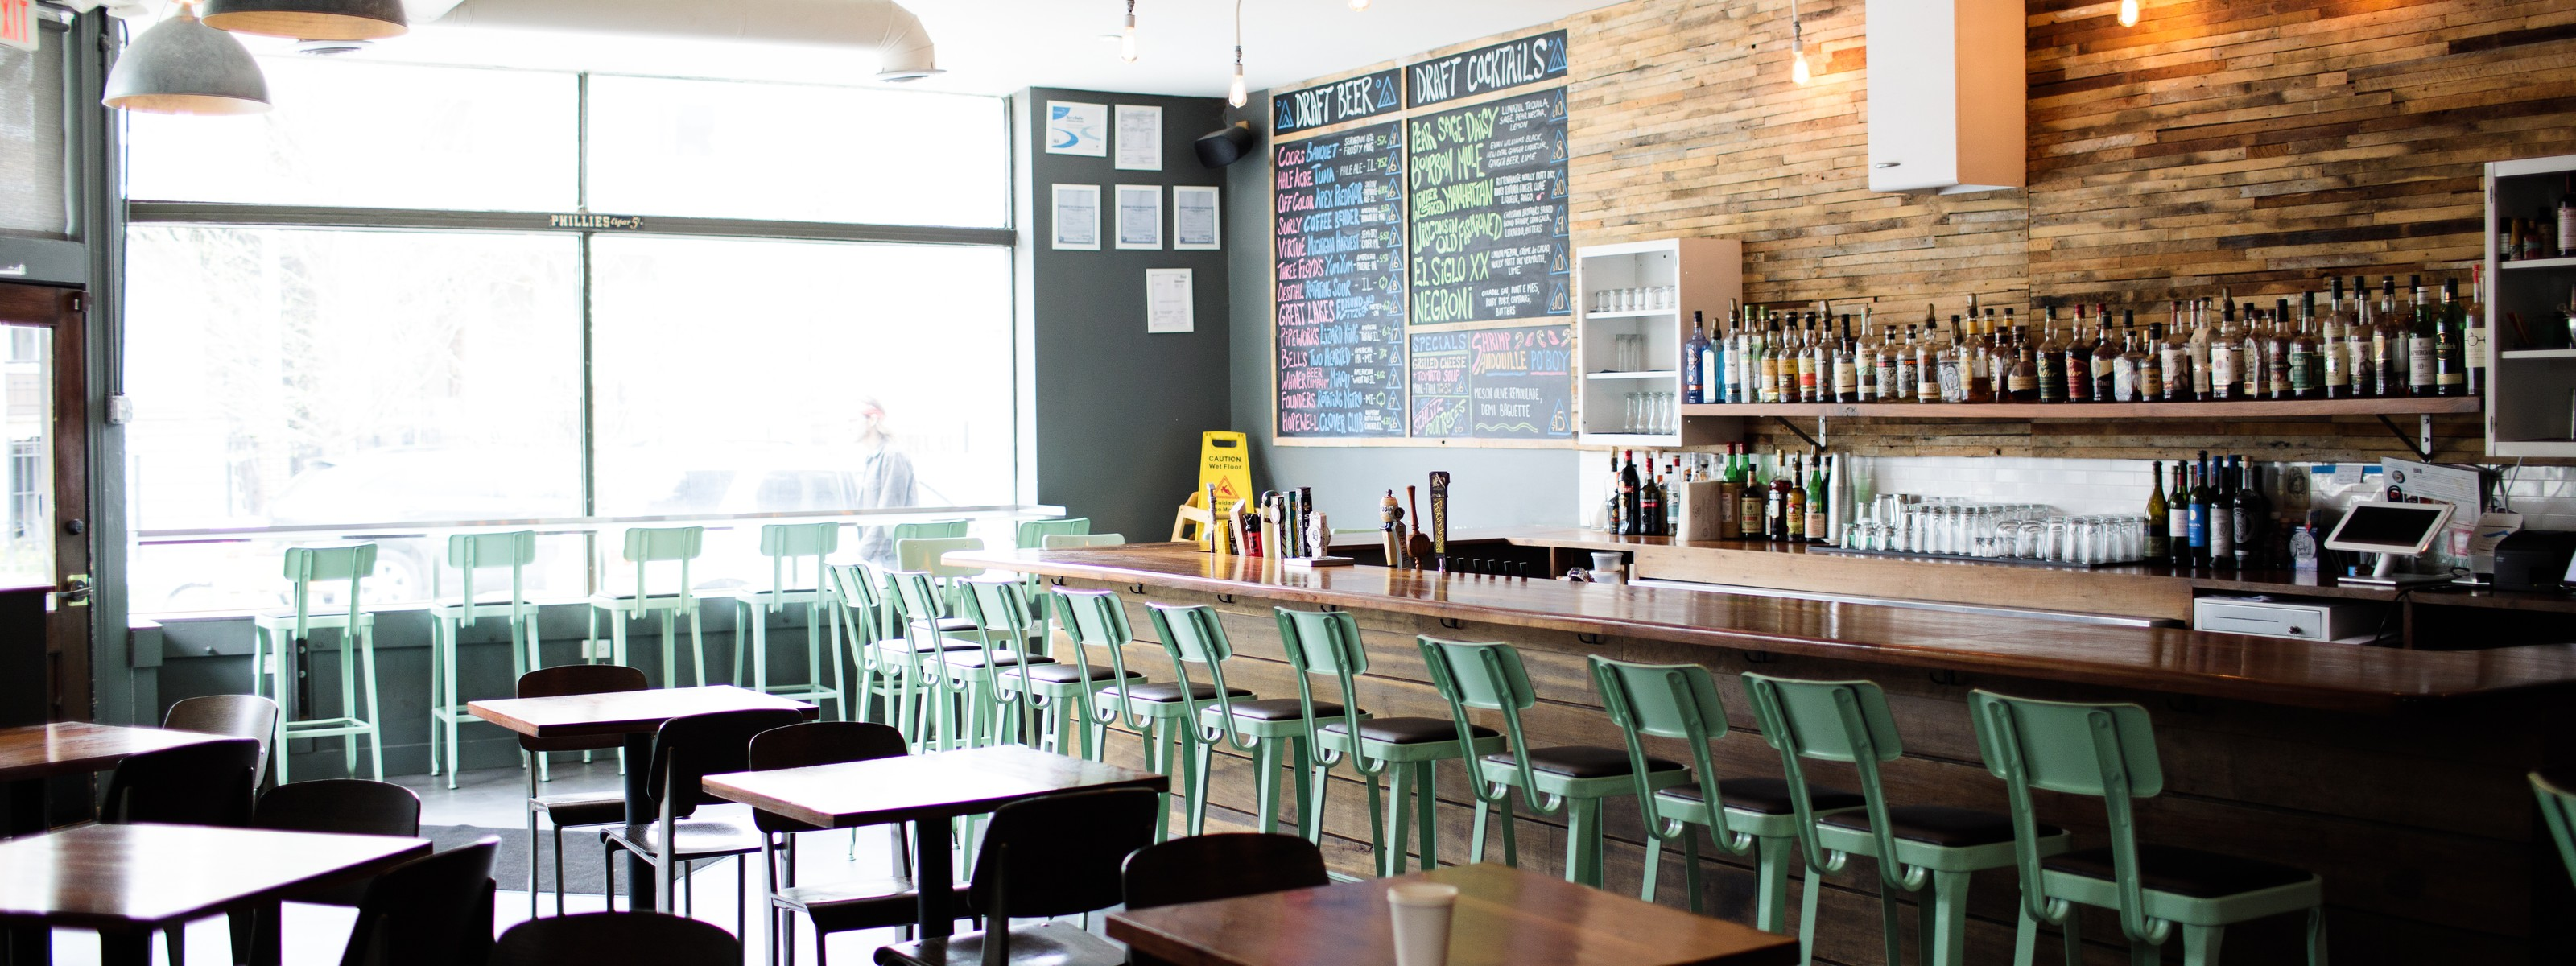 Where To Eat When You're Trying To Not Spend Money - Chicago - The Infatuation